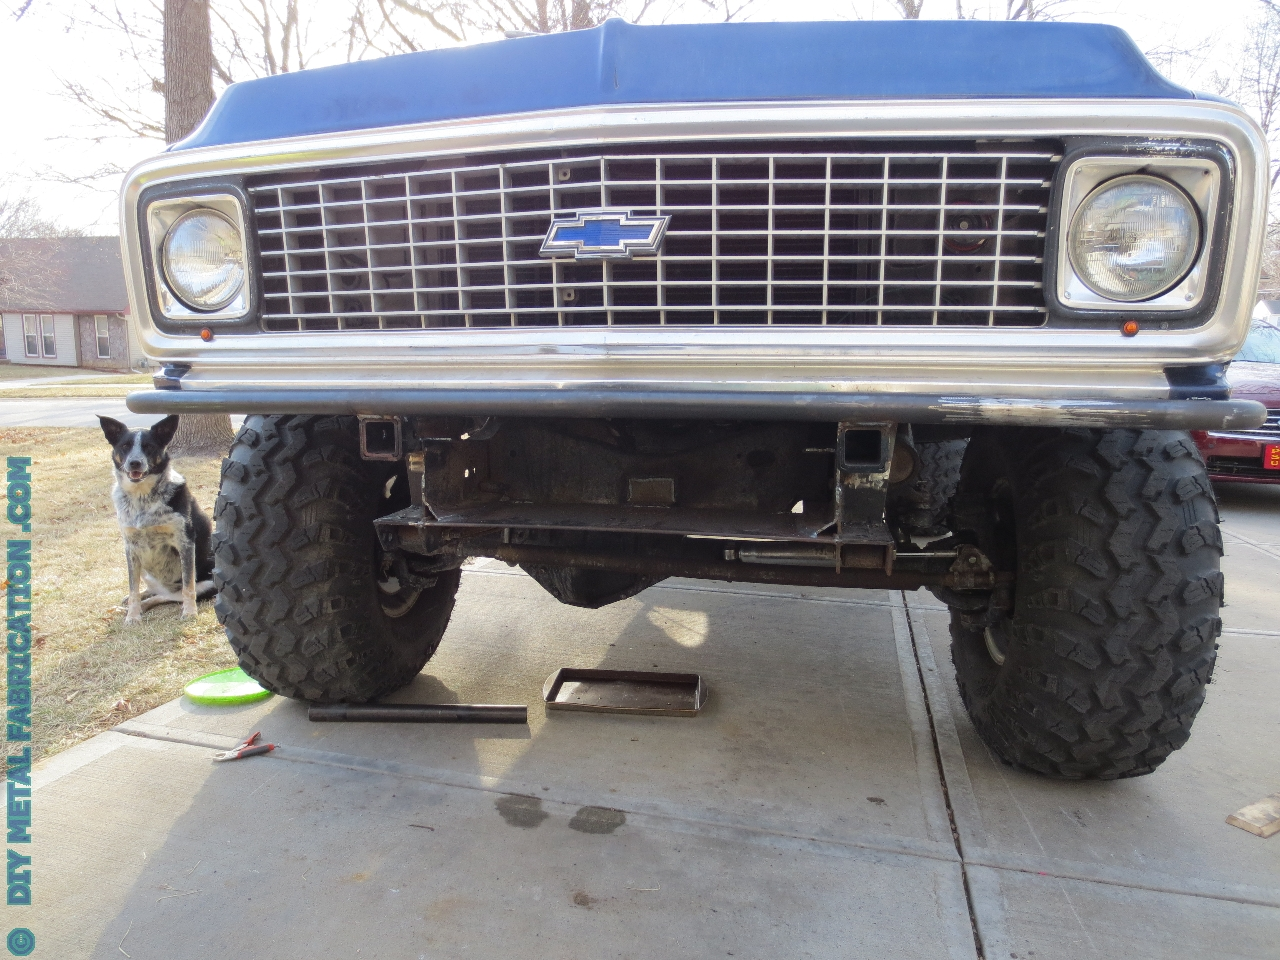 OLD BLUE Build Thread - 71 Chevy - Page 20 - Pirate4x4.Com ...